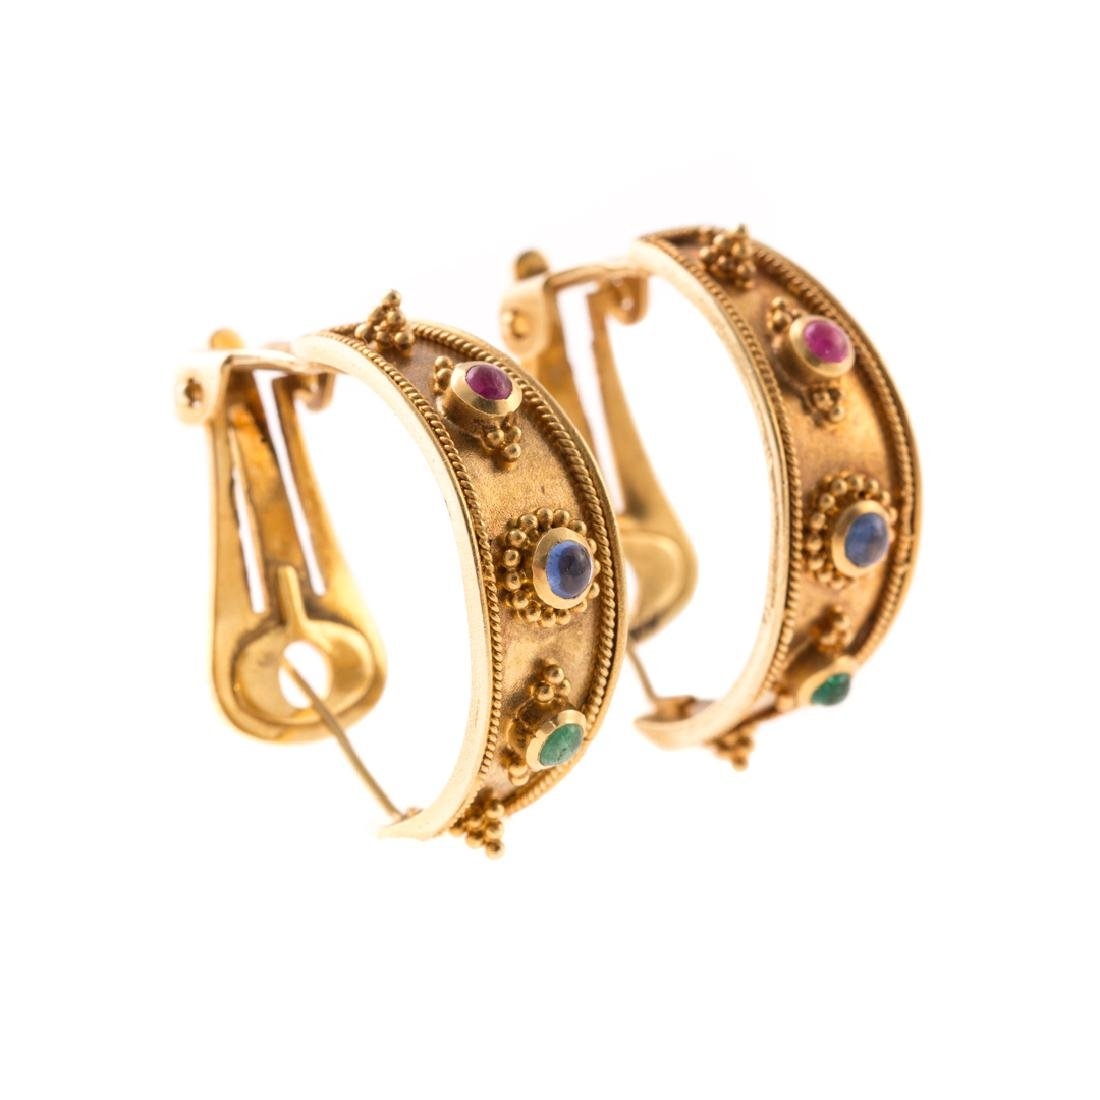 A Pair of 18K Gold and Multi-Color Stone Earrings